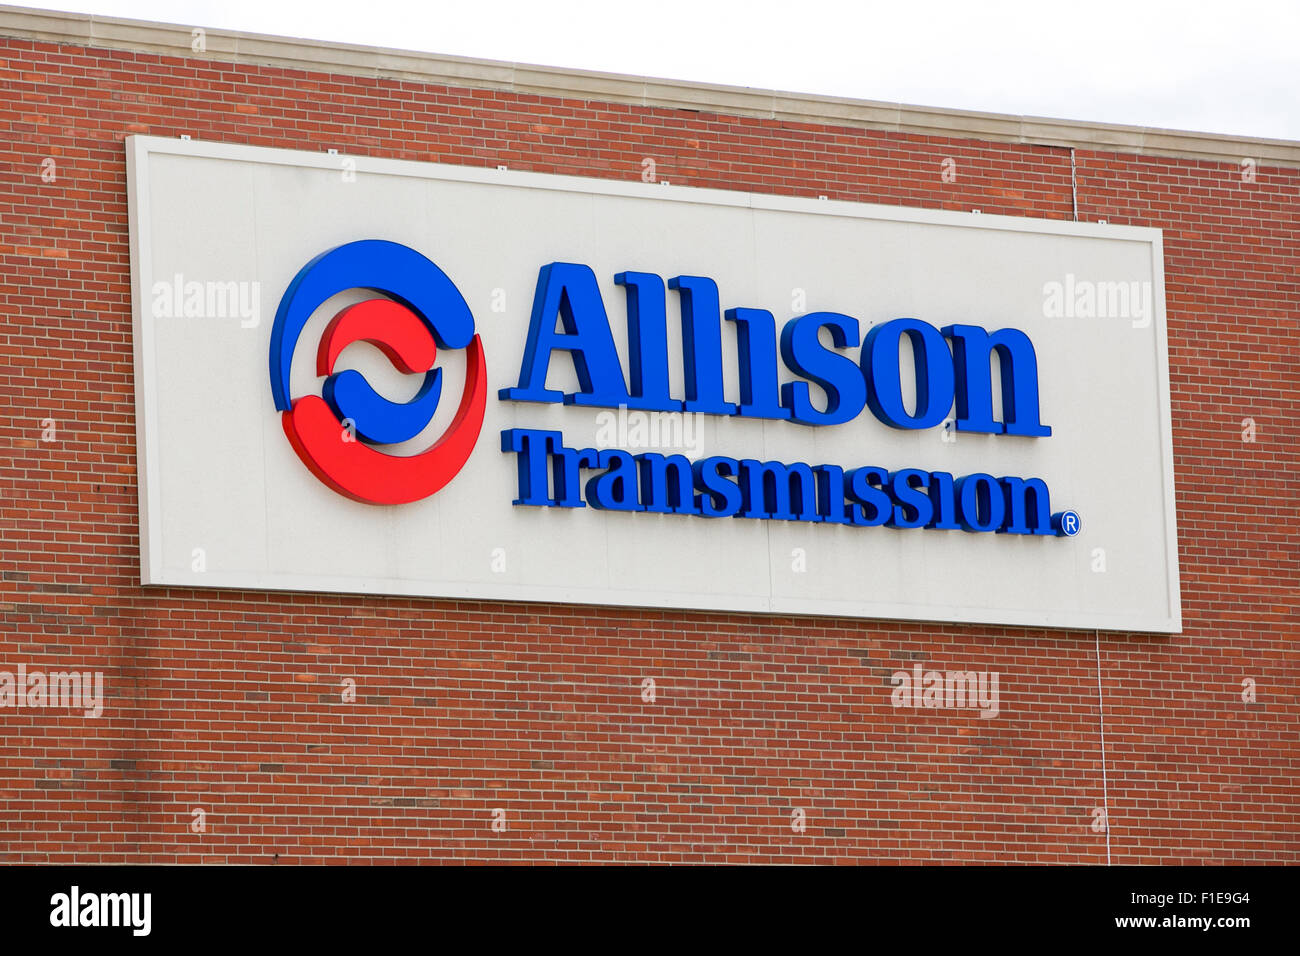 A logo sign outside of the headquarters of Allison Transmission in Indianapolis, Indiana on August 25, 2015. - Stock Image